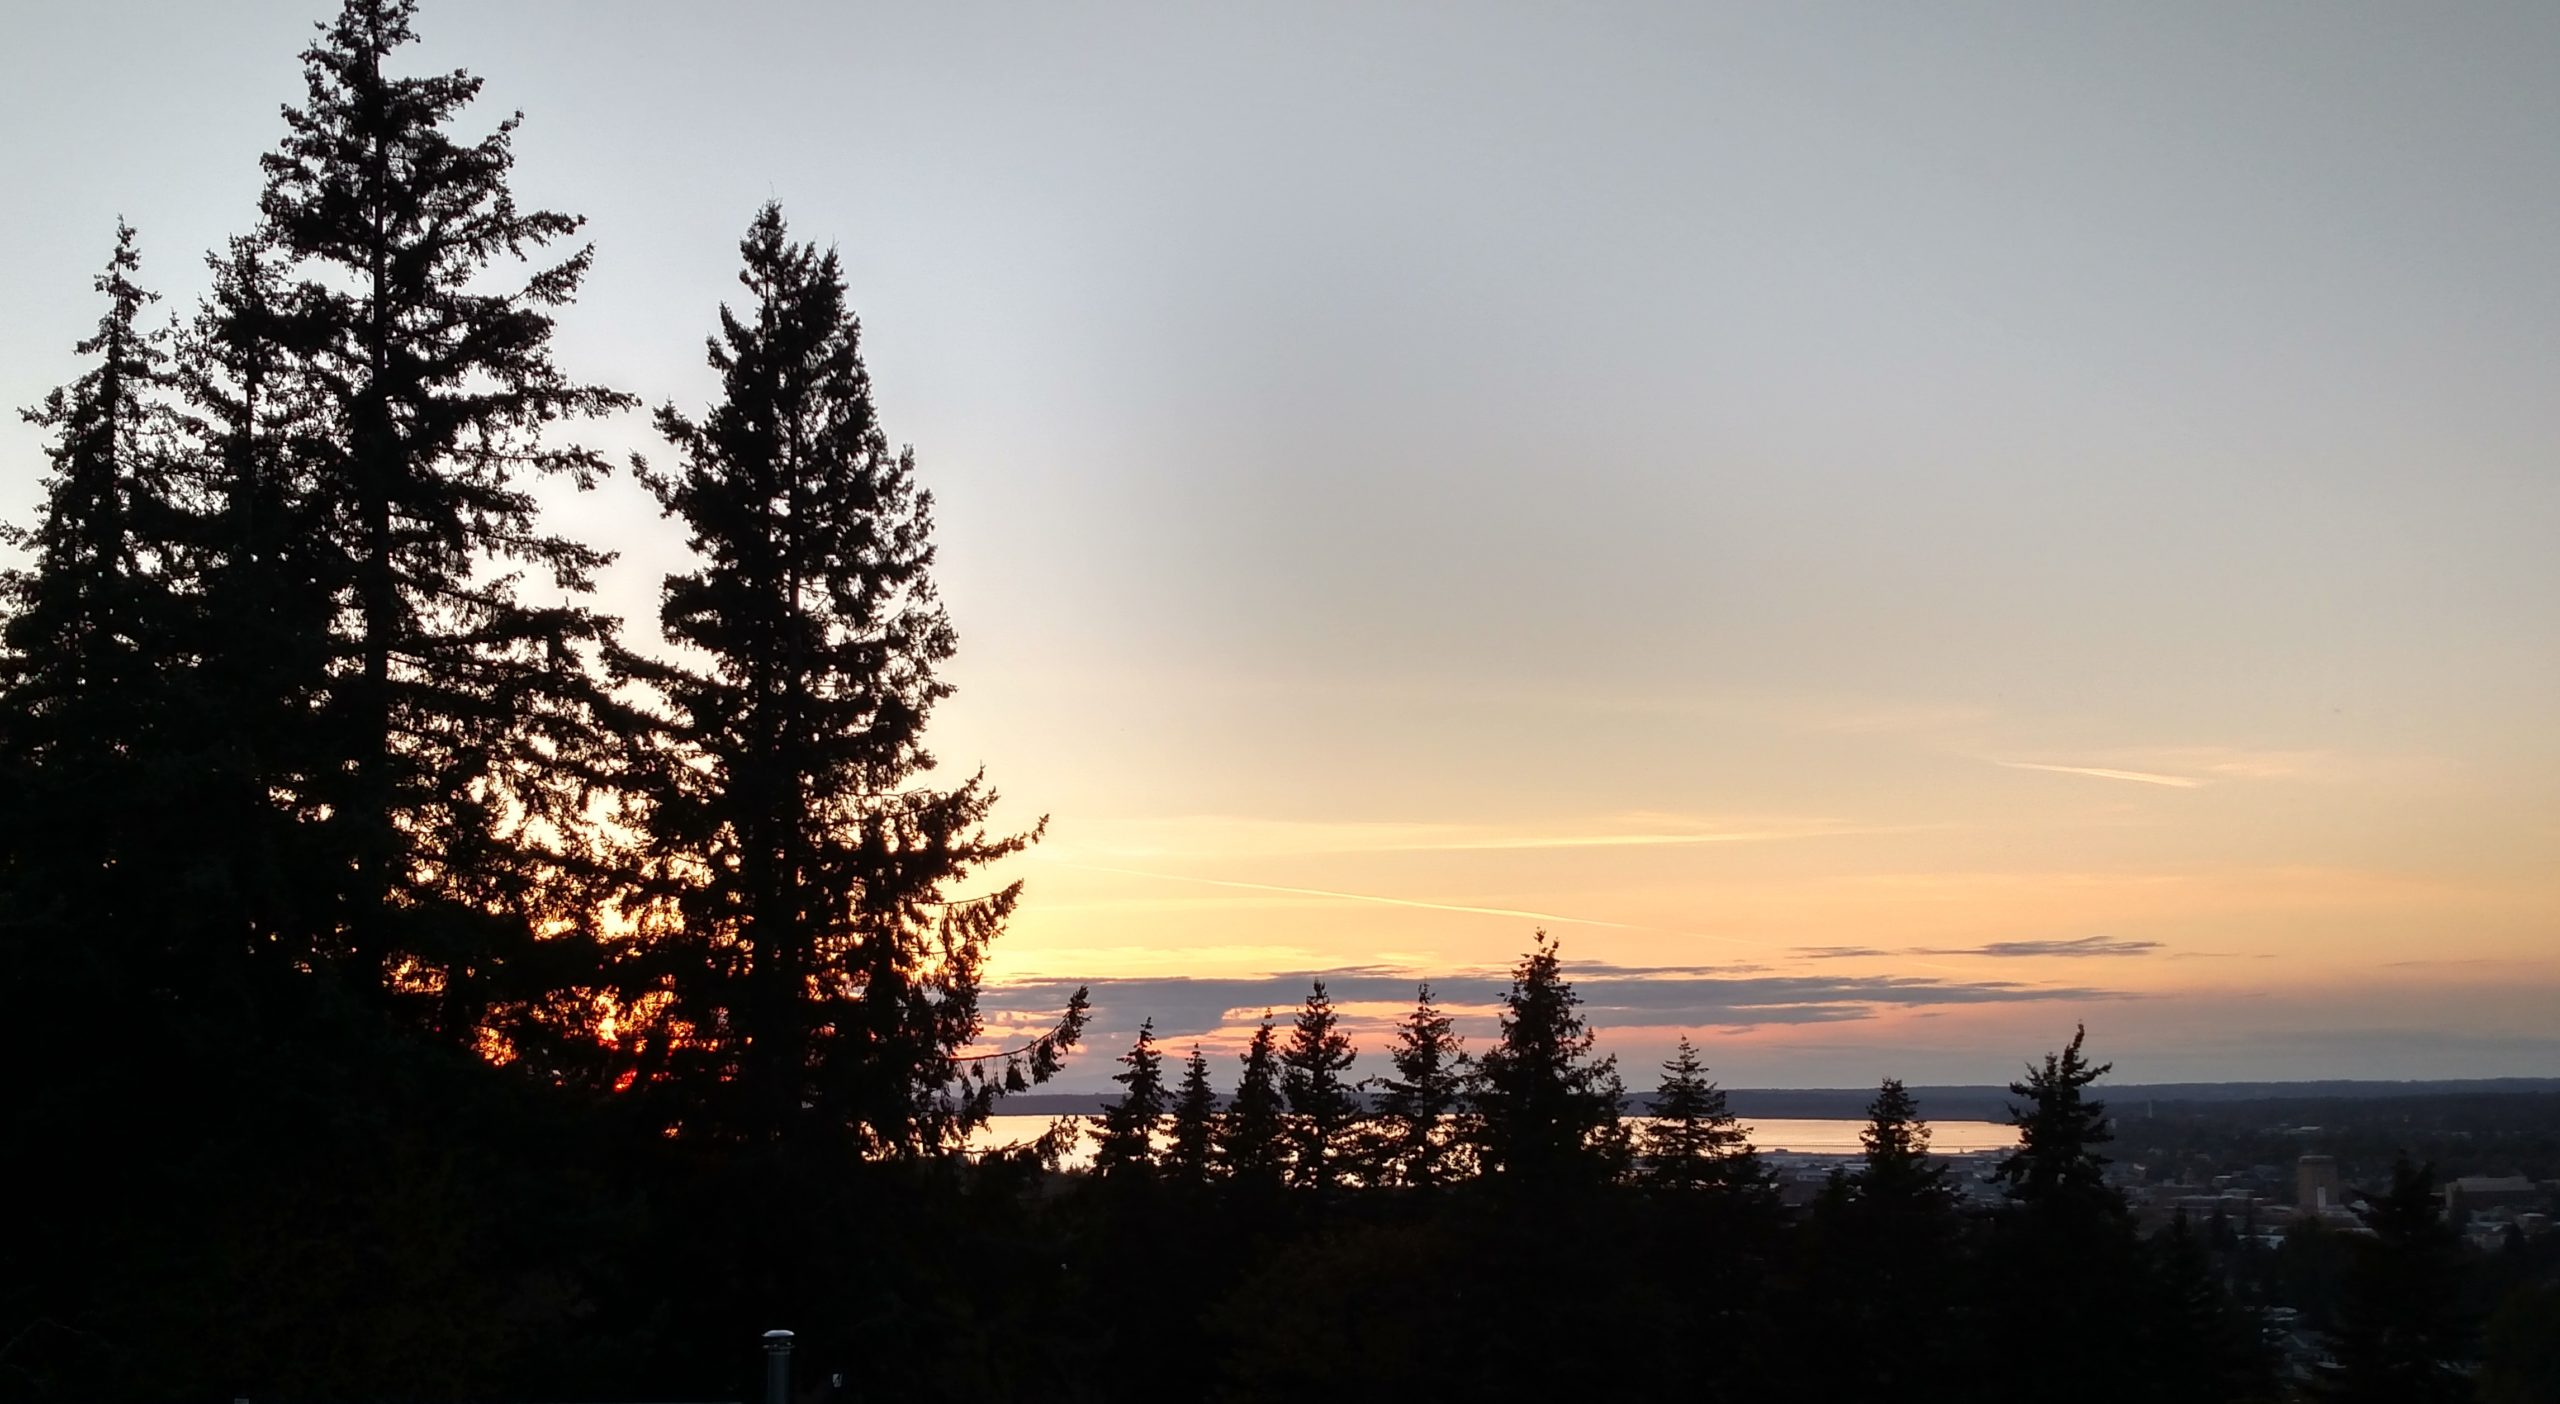 sunset with pine trees in the foreground and a body of water in the background